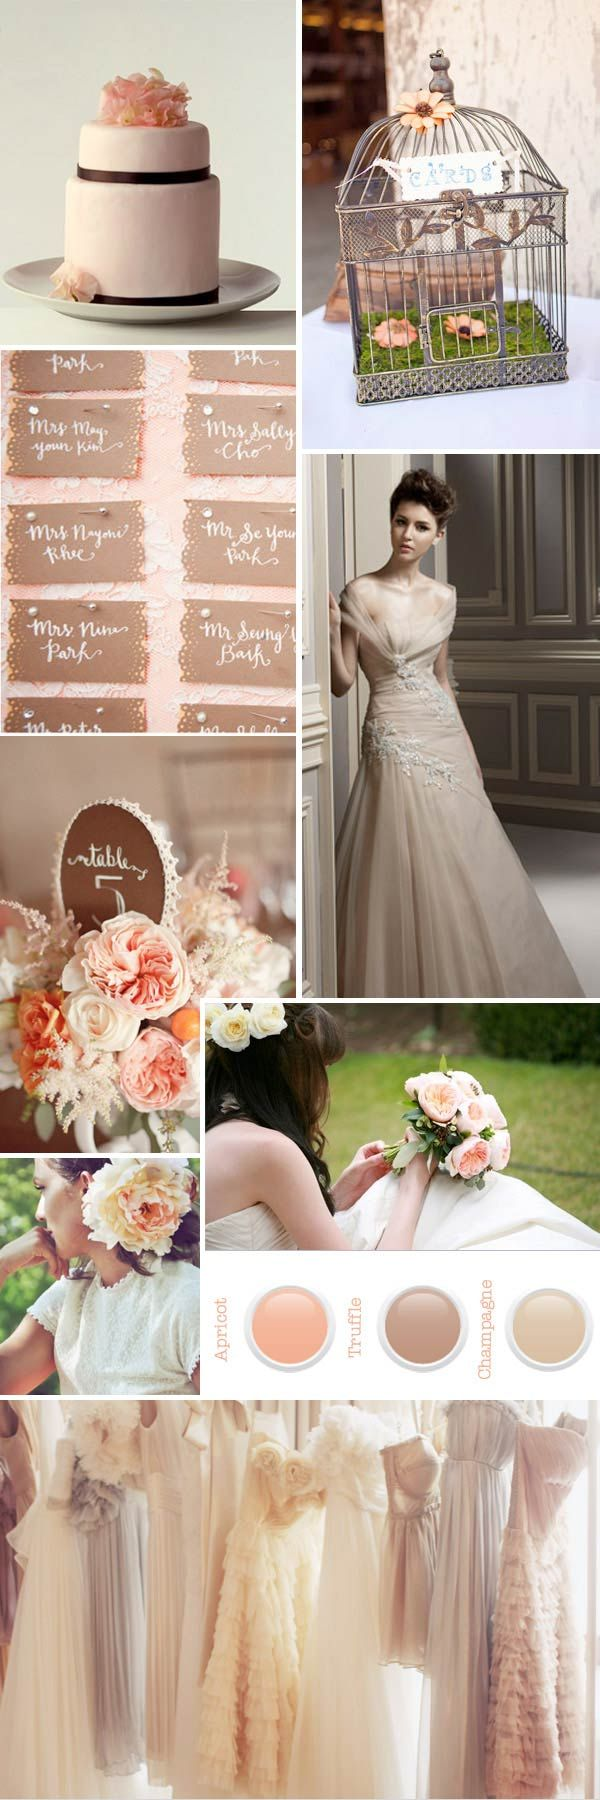 Wedding decoration ideas peach  Peach and Cream Wedding Colors  Wedding Ideas  Pinterest  Cream